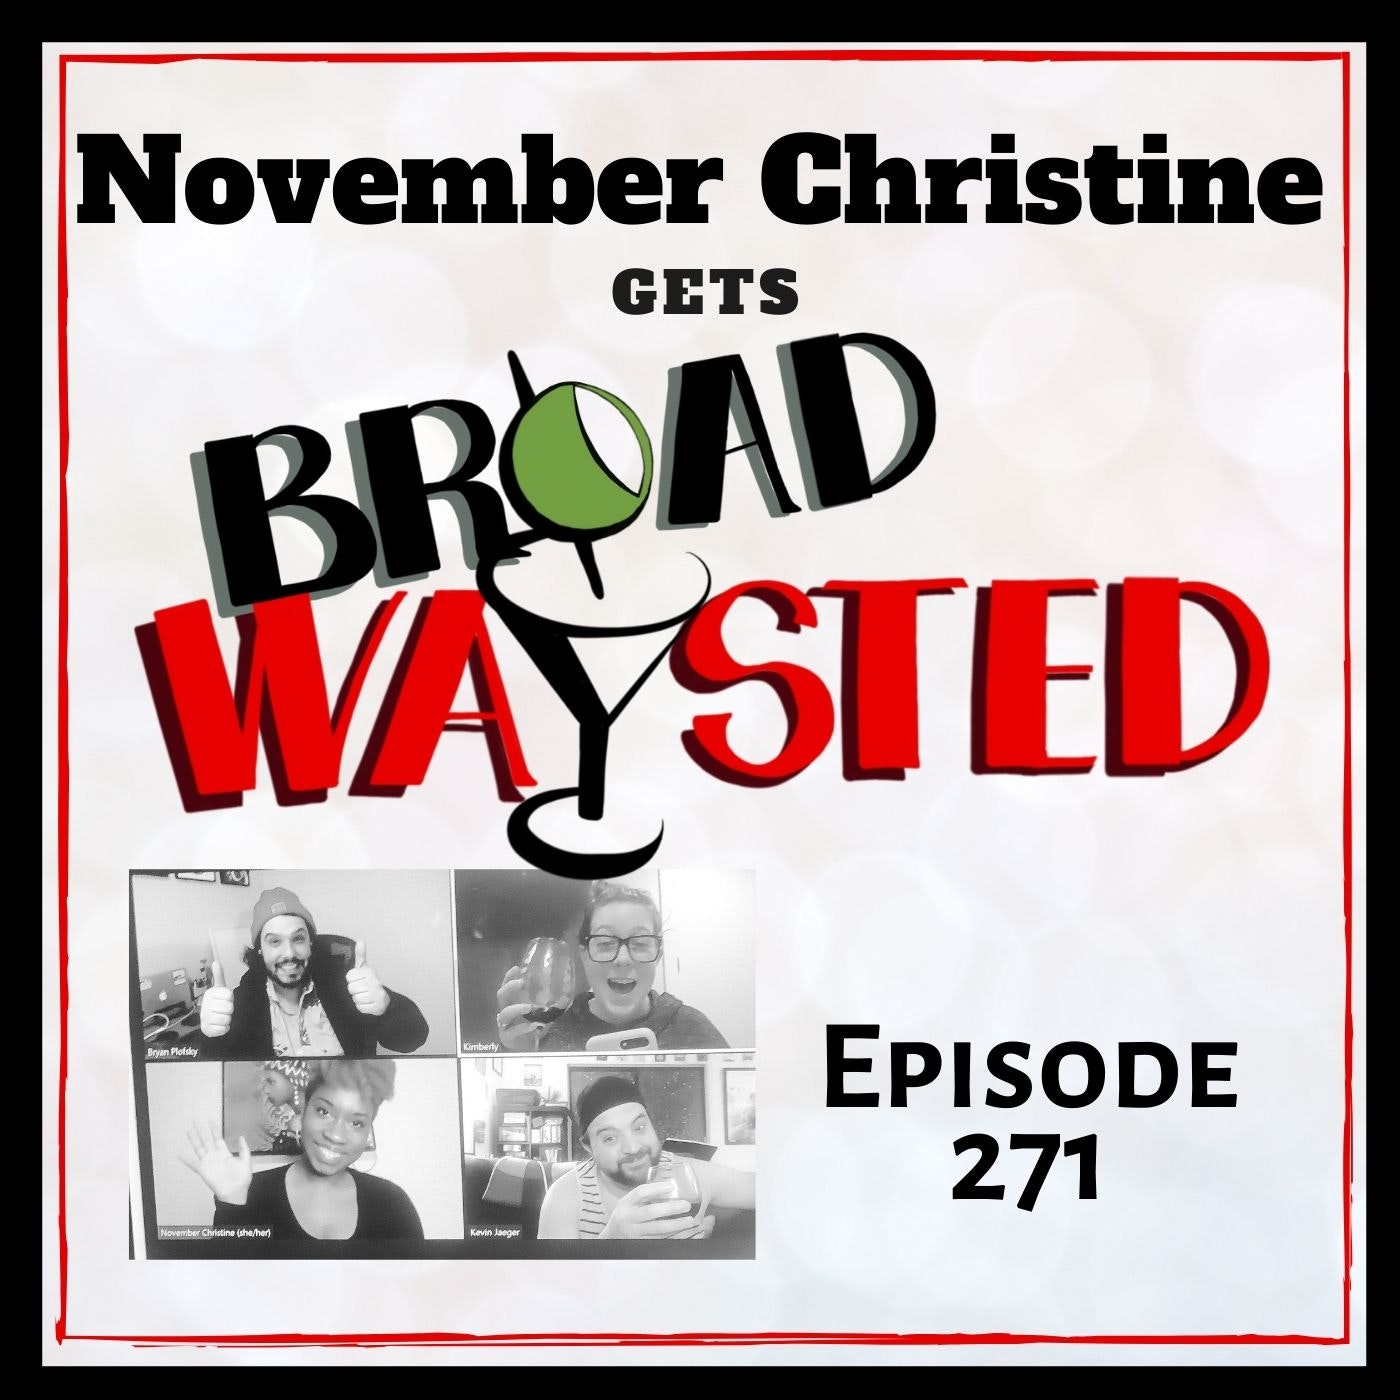 Episode 271: November Christine gets Broadwaysted!